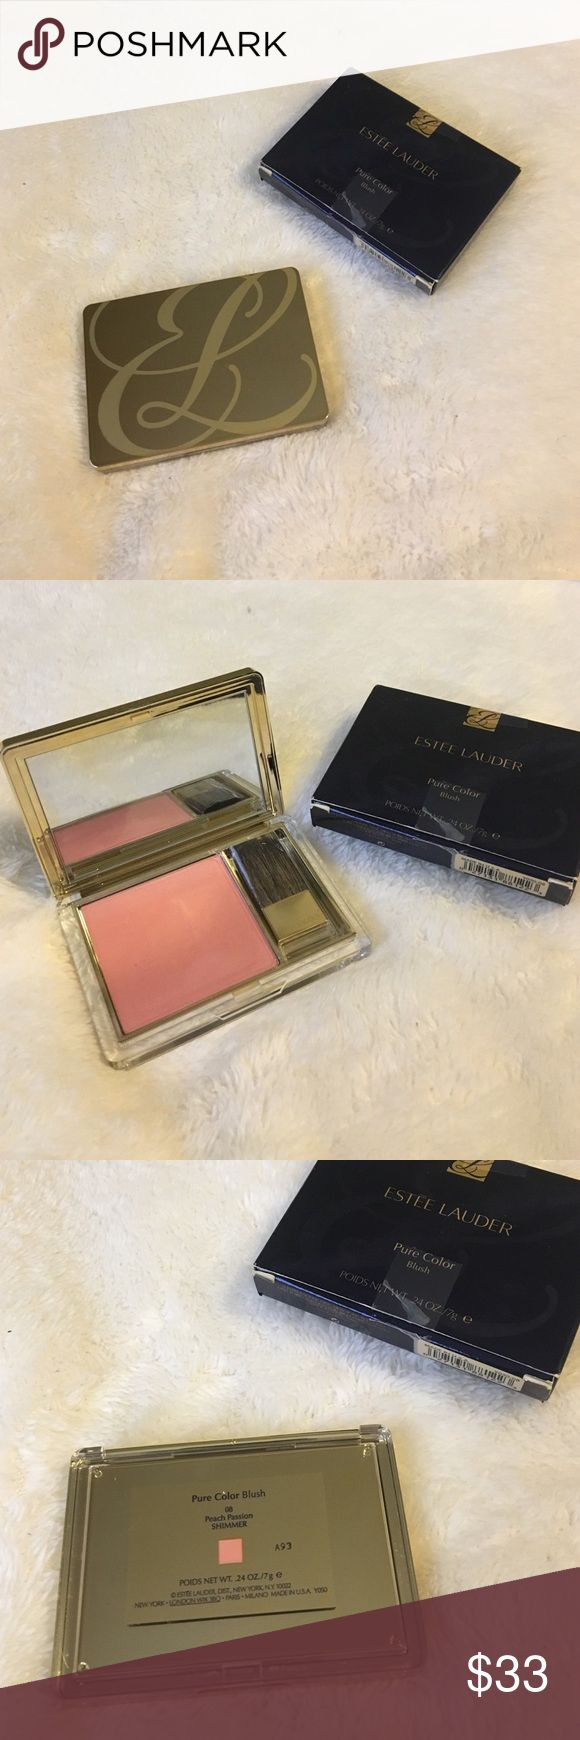 Estée Lauder pure color blush 🍑 08 peach passion shimmer                              👑 never used, comes with the box                      💯 100% authentic.                                                  💕beautiful color never got a chance to use this                                                                              💘 feel free to ask questions or give me an offer Estee Lauder Makeup Blush